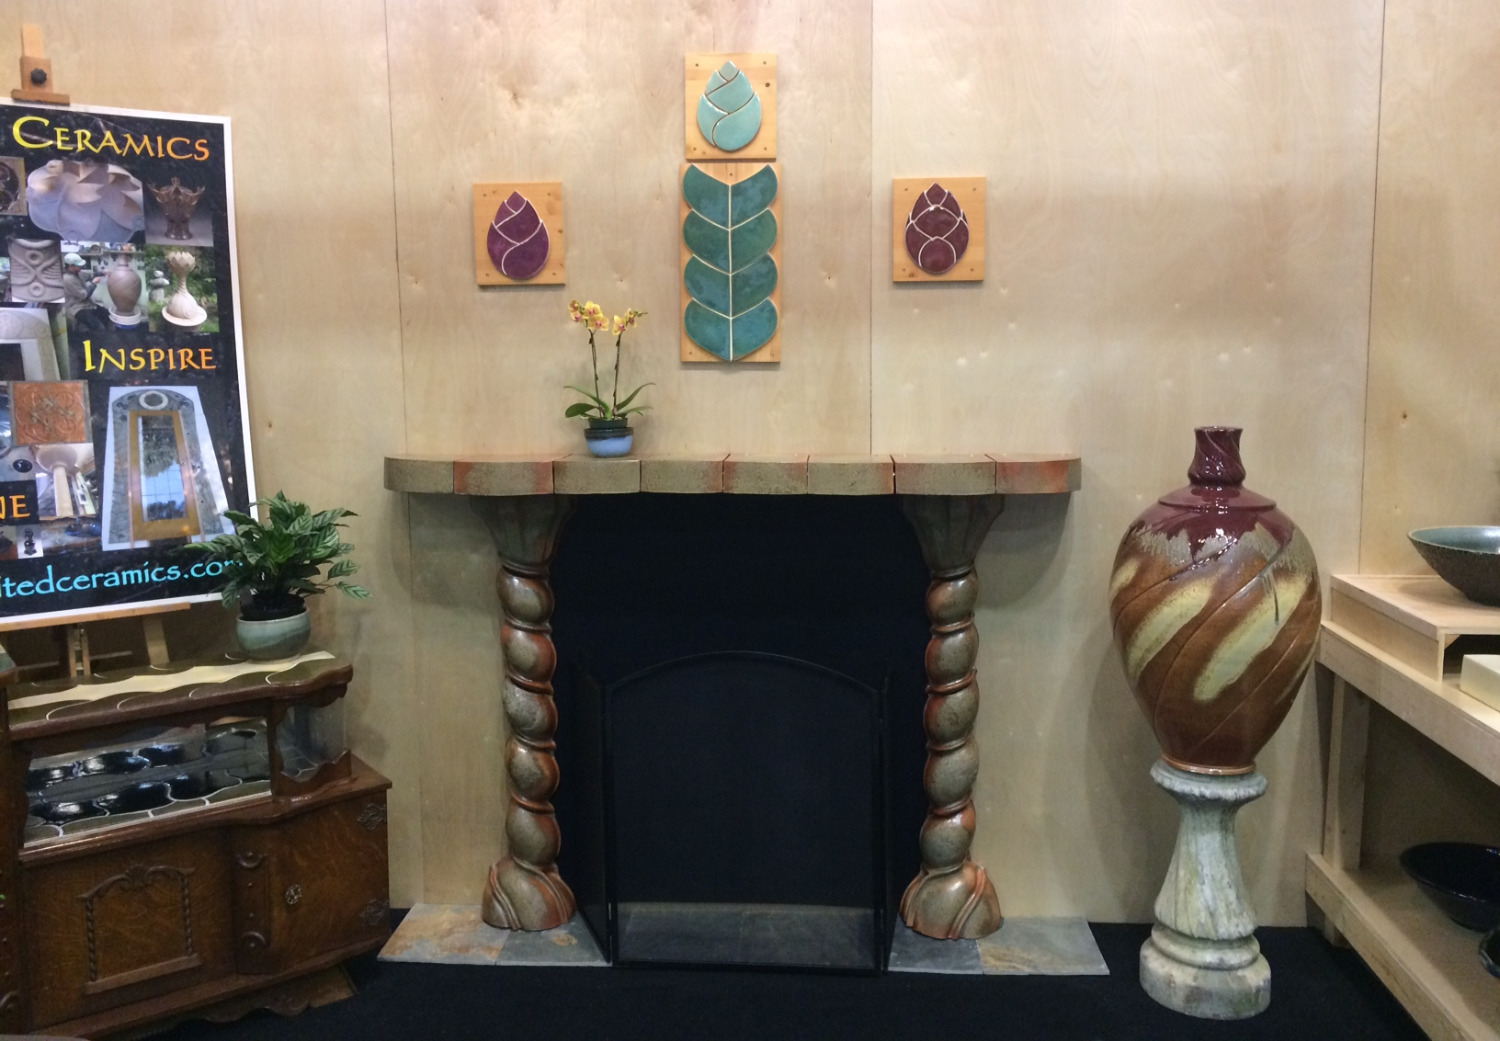 Fire Place and Tile Pic #1